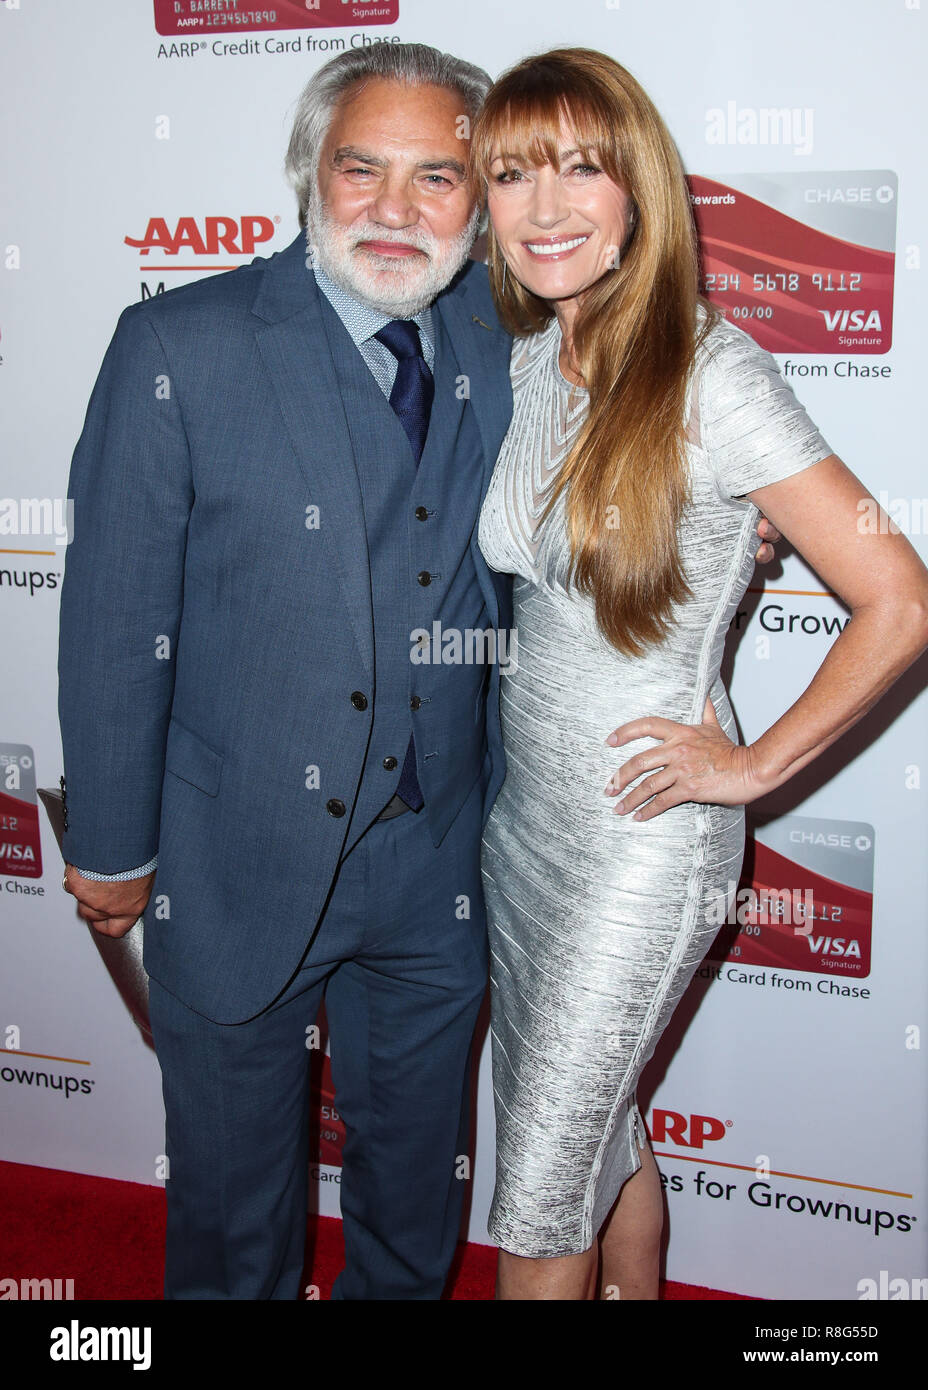 BEVERLY HILLS, LOS ANGELES, CA, USA - FEBRUARY 05: David Green, Jane Seymour at AARP's 17th Annual Movies For Grownups Awards held at The Beverly Wilshire Beverly Hills (A Four Seasons Hotel) on February 5, 2018 in Beverly Hills, Los Angeles, California, United States. (Photo by Xavier Collin/Image Press Agency) - Stock Image